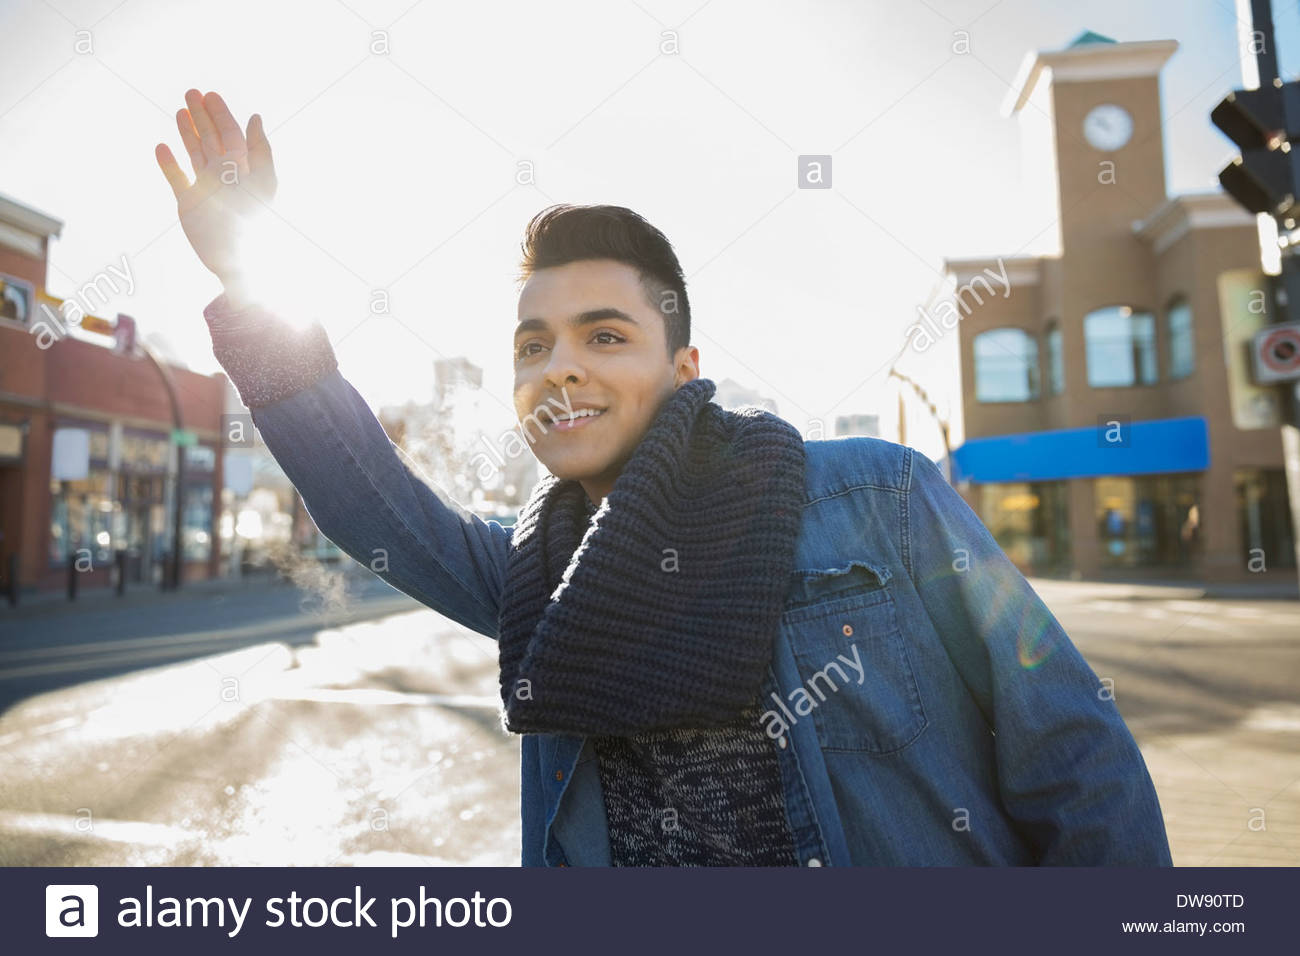 Homme hailing taxi on city street Photo Stock